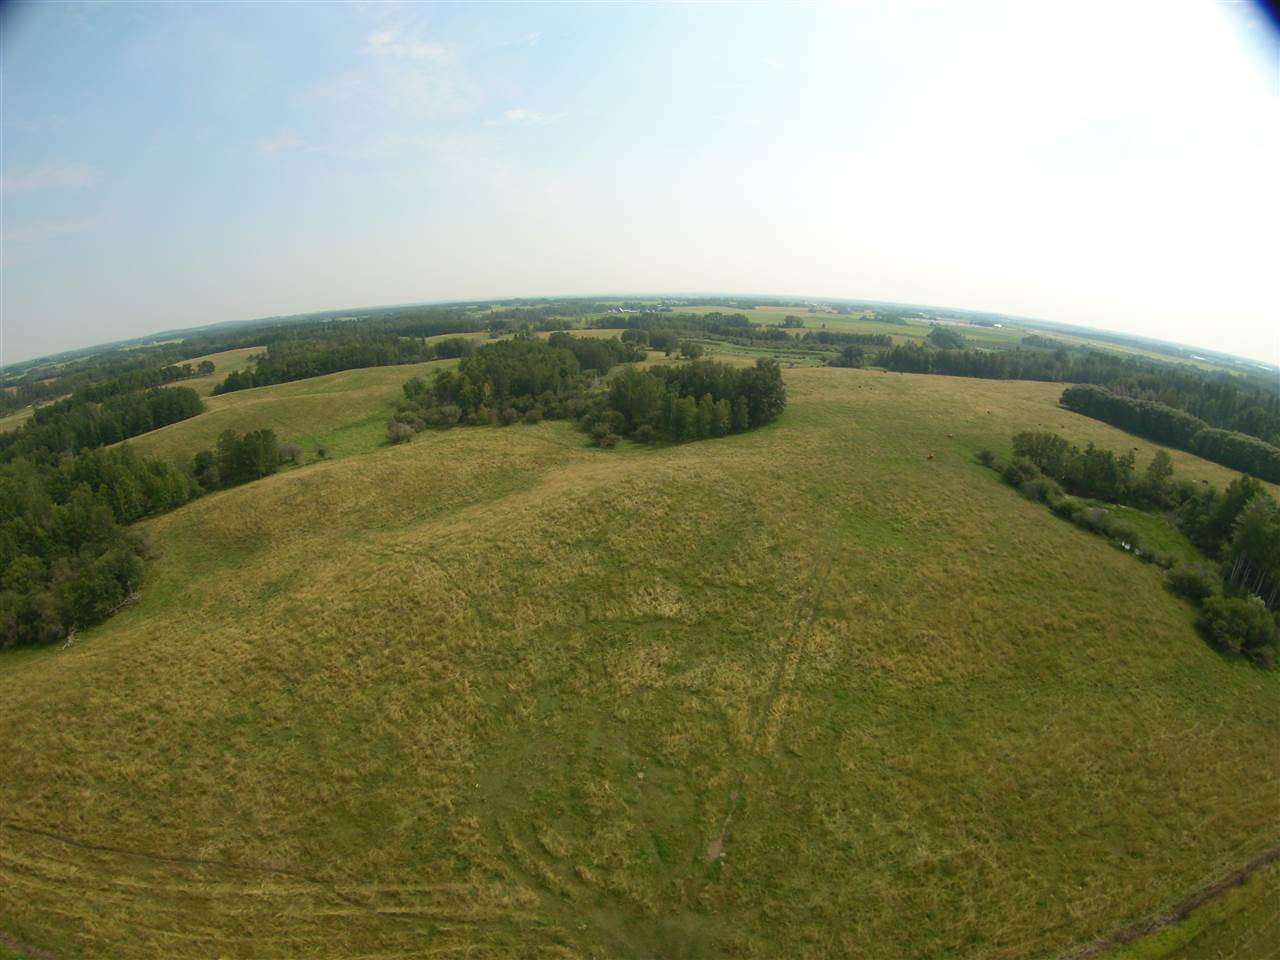 Main Photo: 53235 Rge Rd 11: Rural Parkland County Rural Land/Vacant Lot for sale : MLS® # E4078106